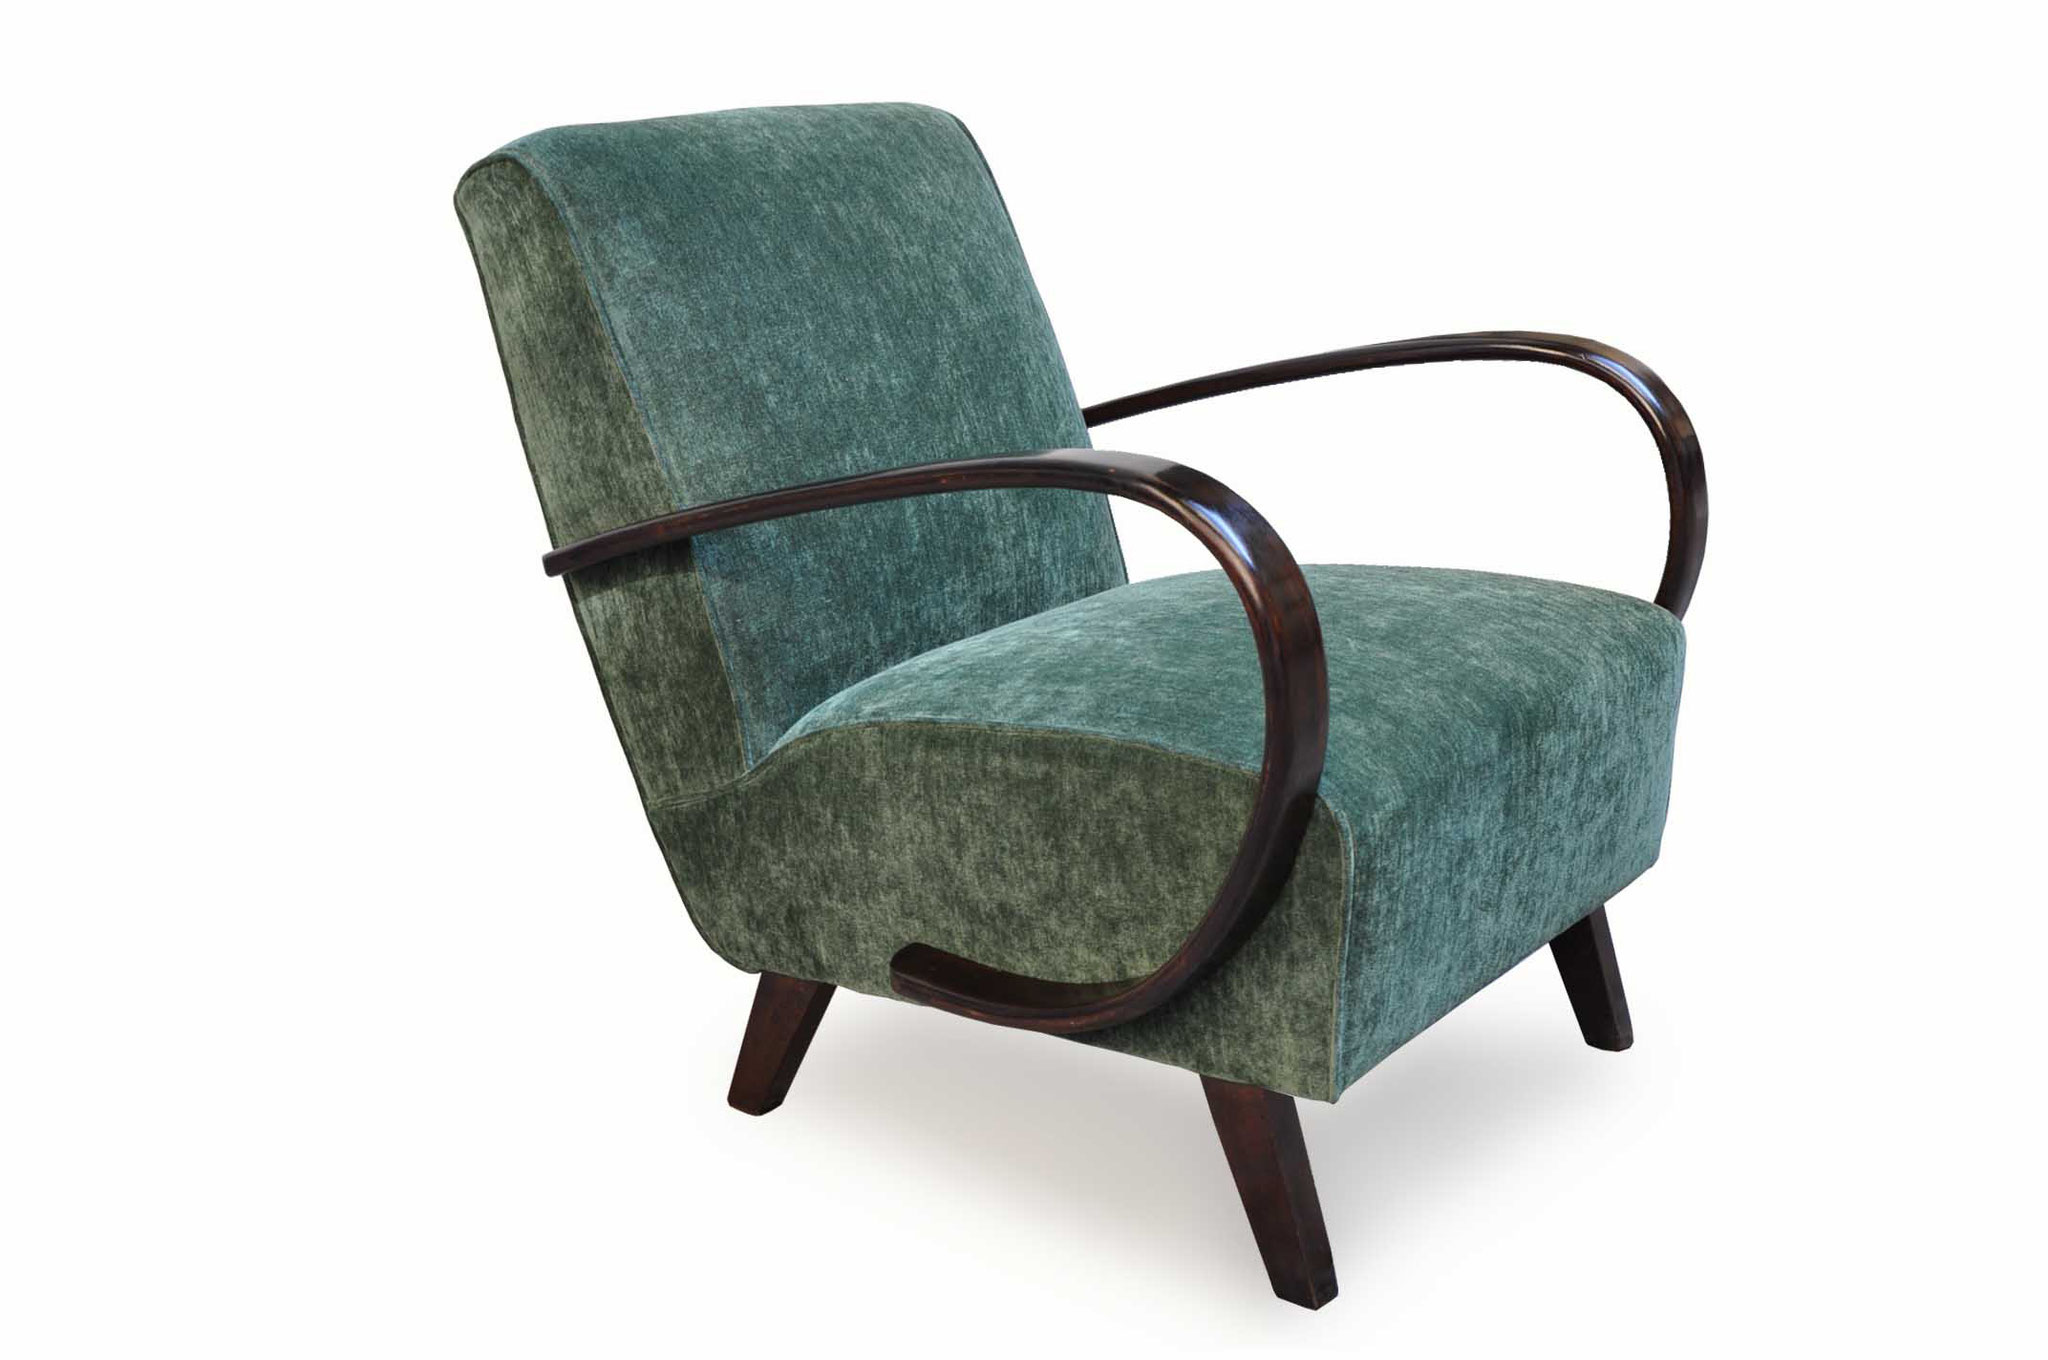 art deco chair in green chenille